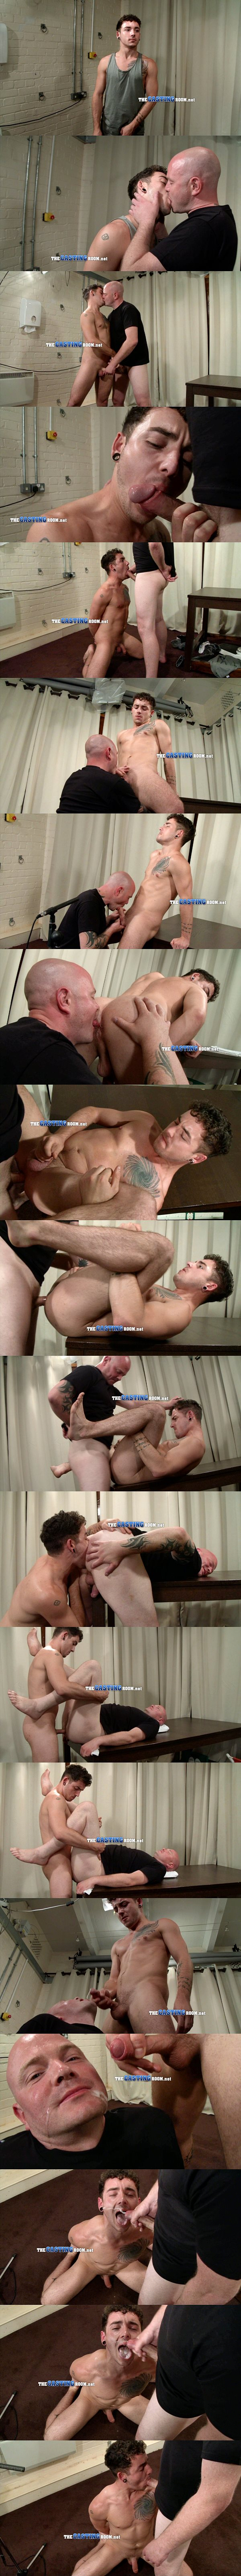 Hot young man Jack Green flip-fucks skinhead Dave at Thecastingroom 02